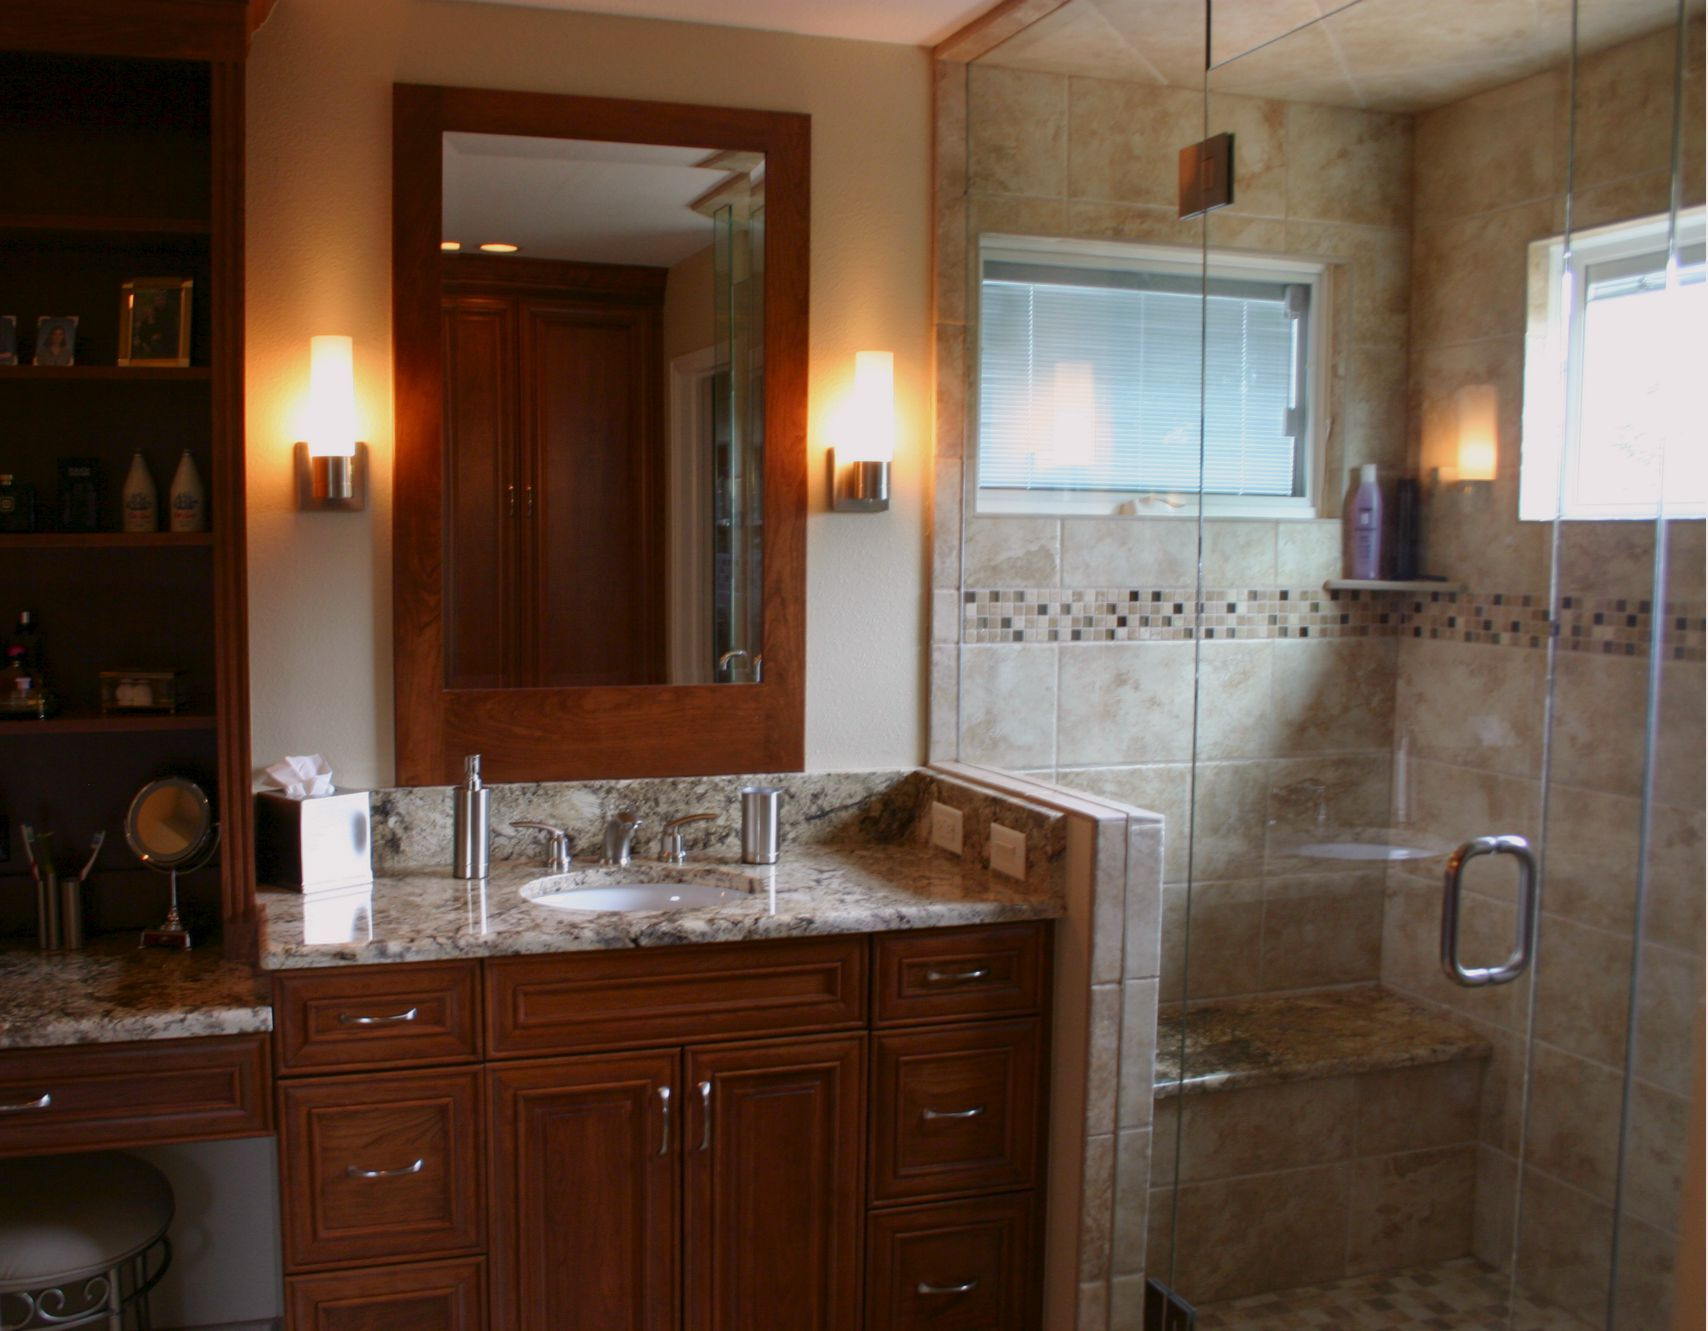 BKC Kitchen And Bath Master Bath Remodel: Crystal Cabinet Works, Huntington  Door Style,